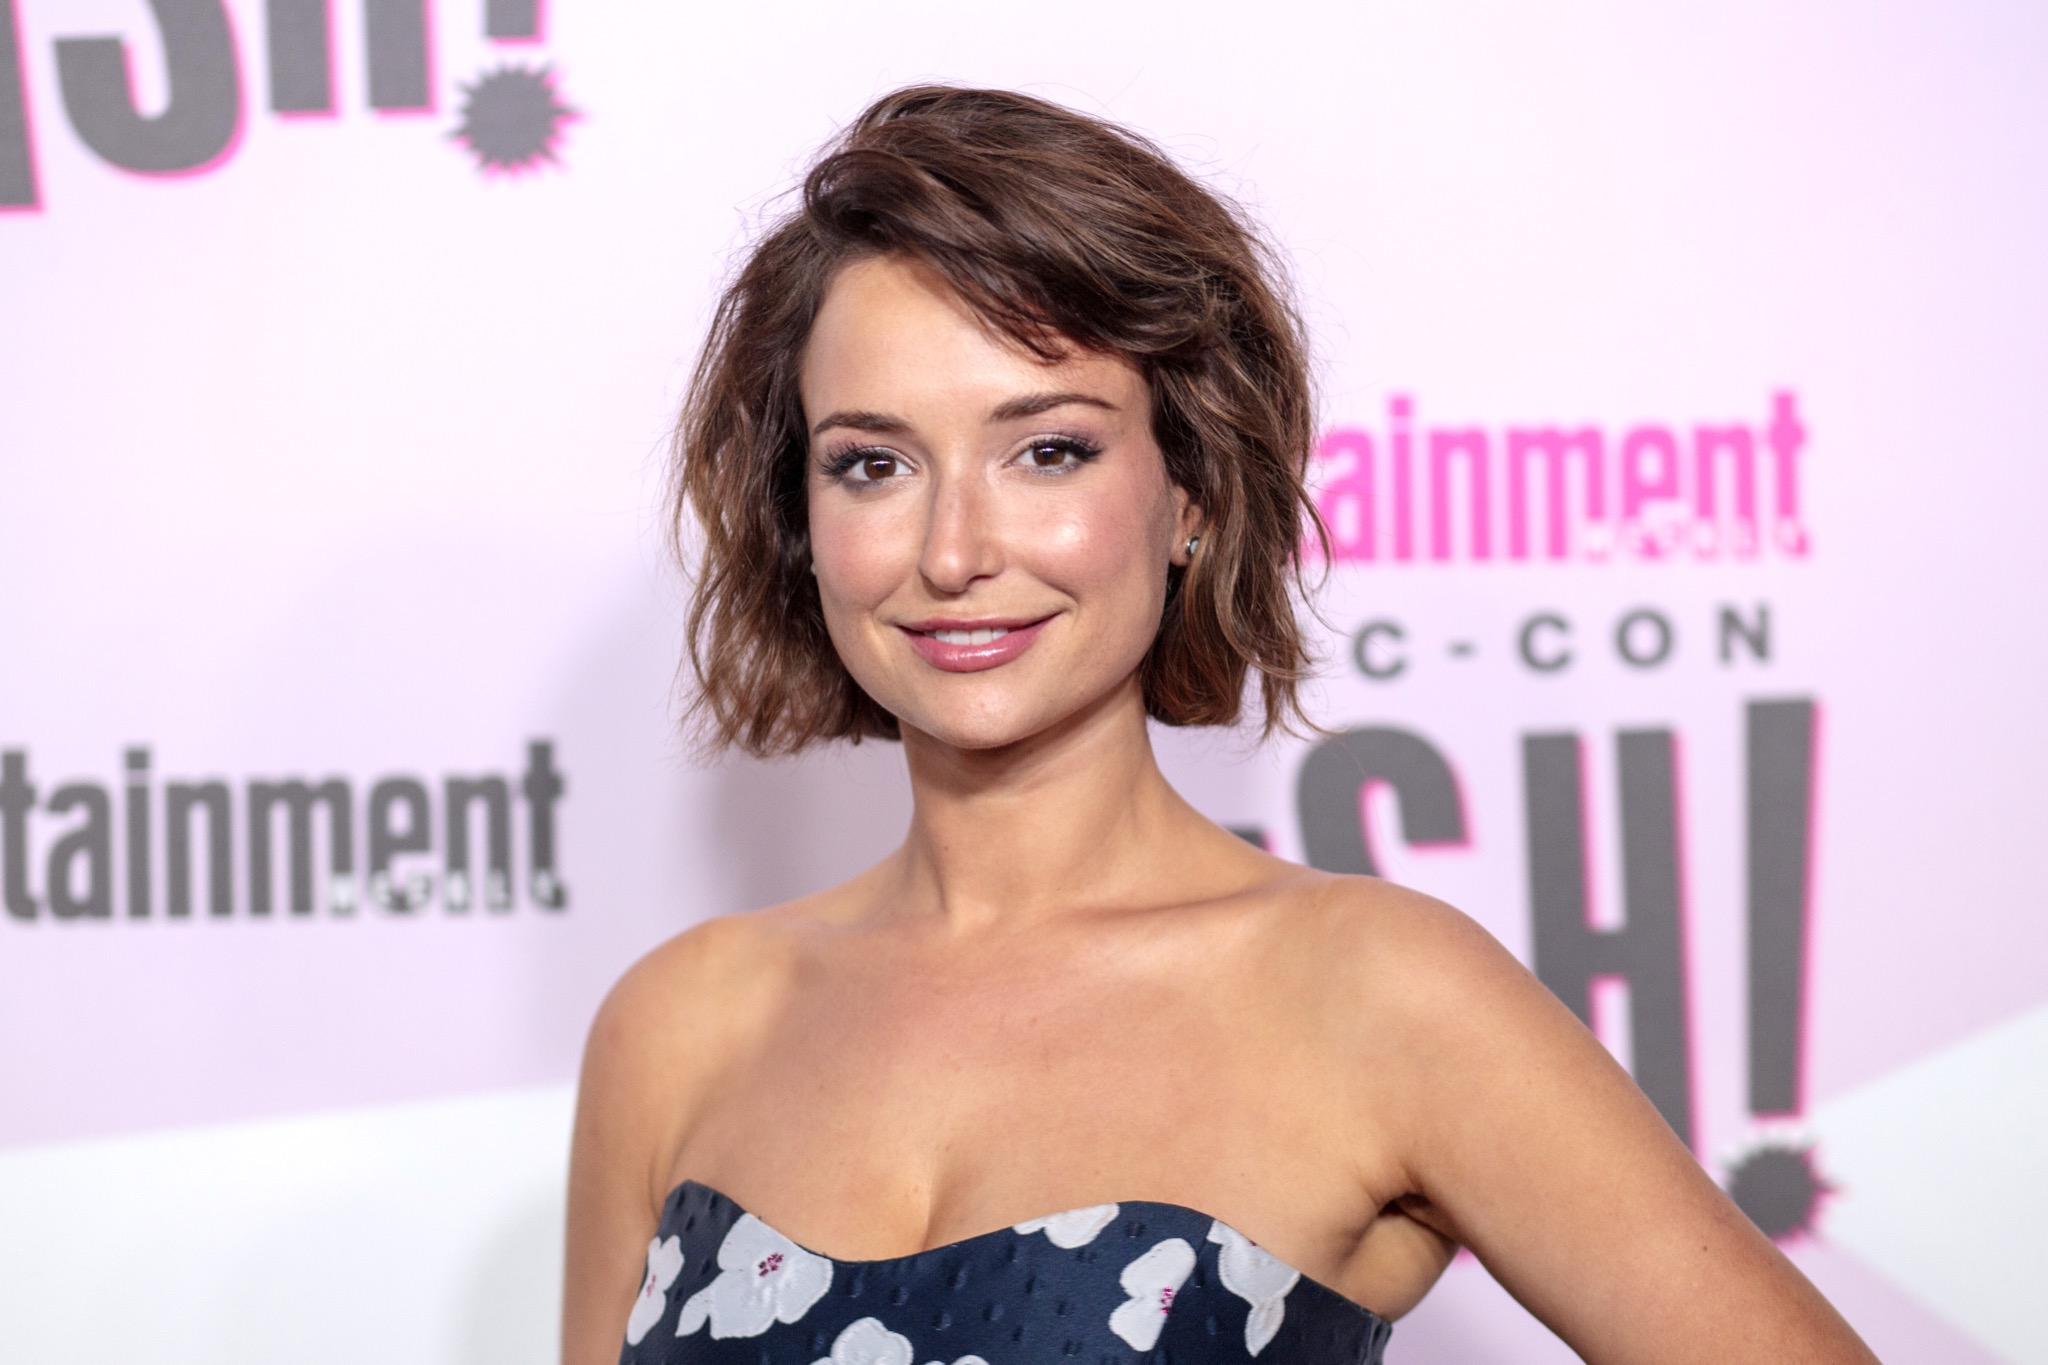 2018 San Diego Comic Con - Entertainment Weekly's closing night party - Arrivals Featuring: Milana Vayntrub Where: San Diego, California, United States When: 22 Jul 2018 Credit: Tony Forte/WENN